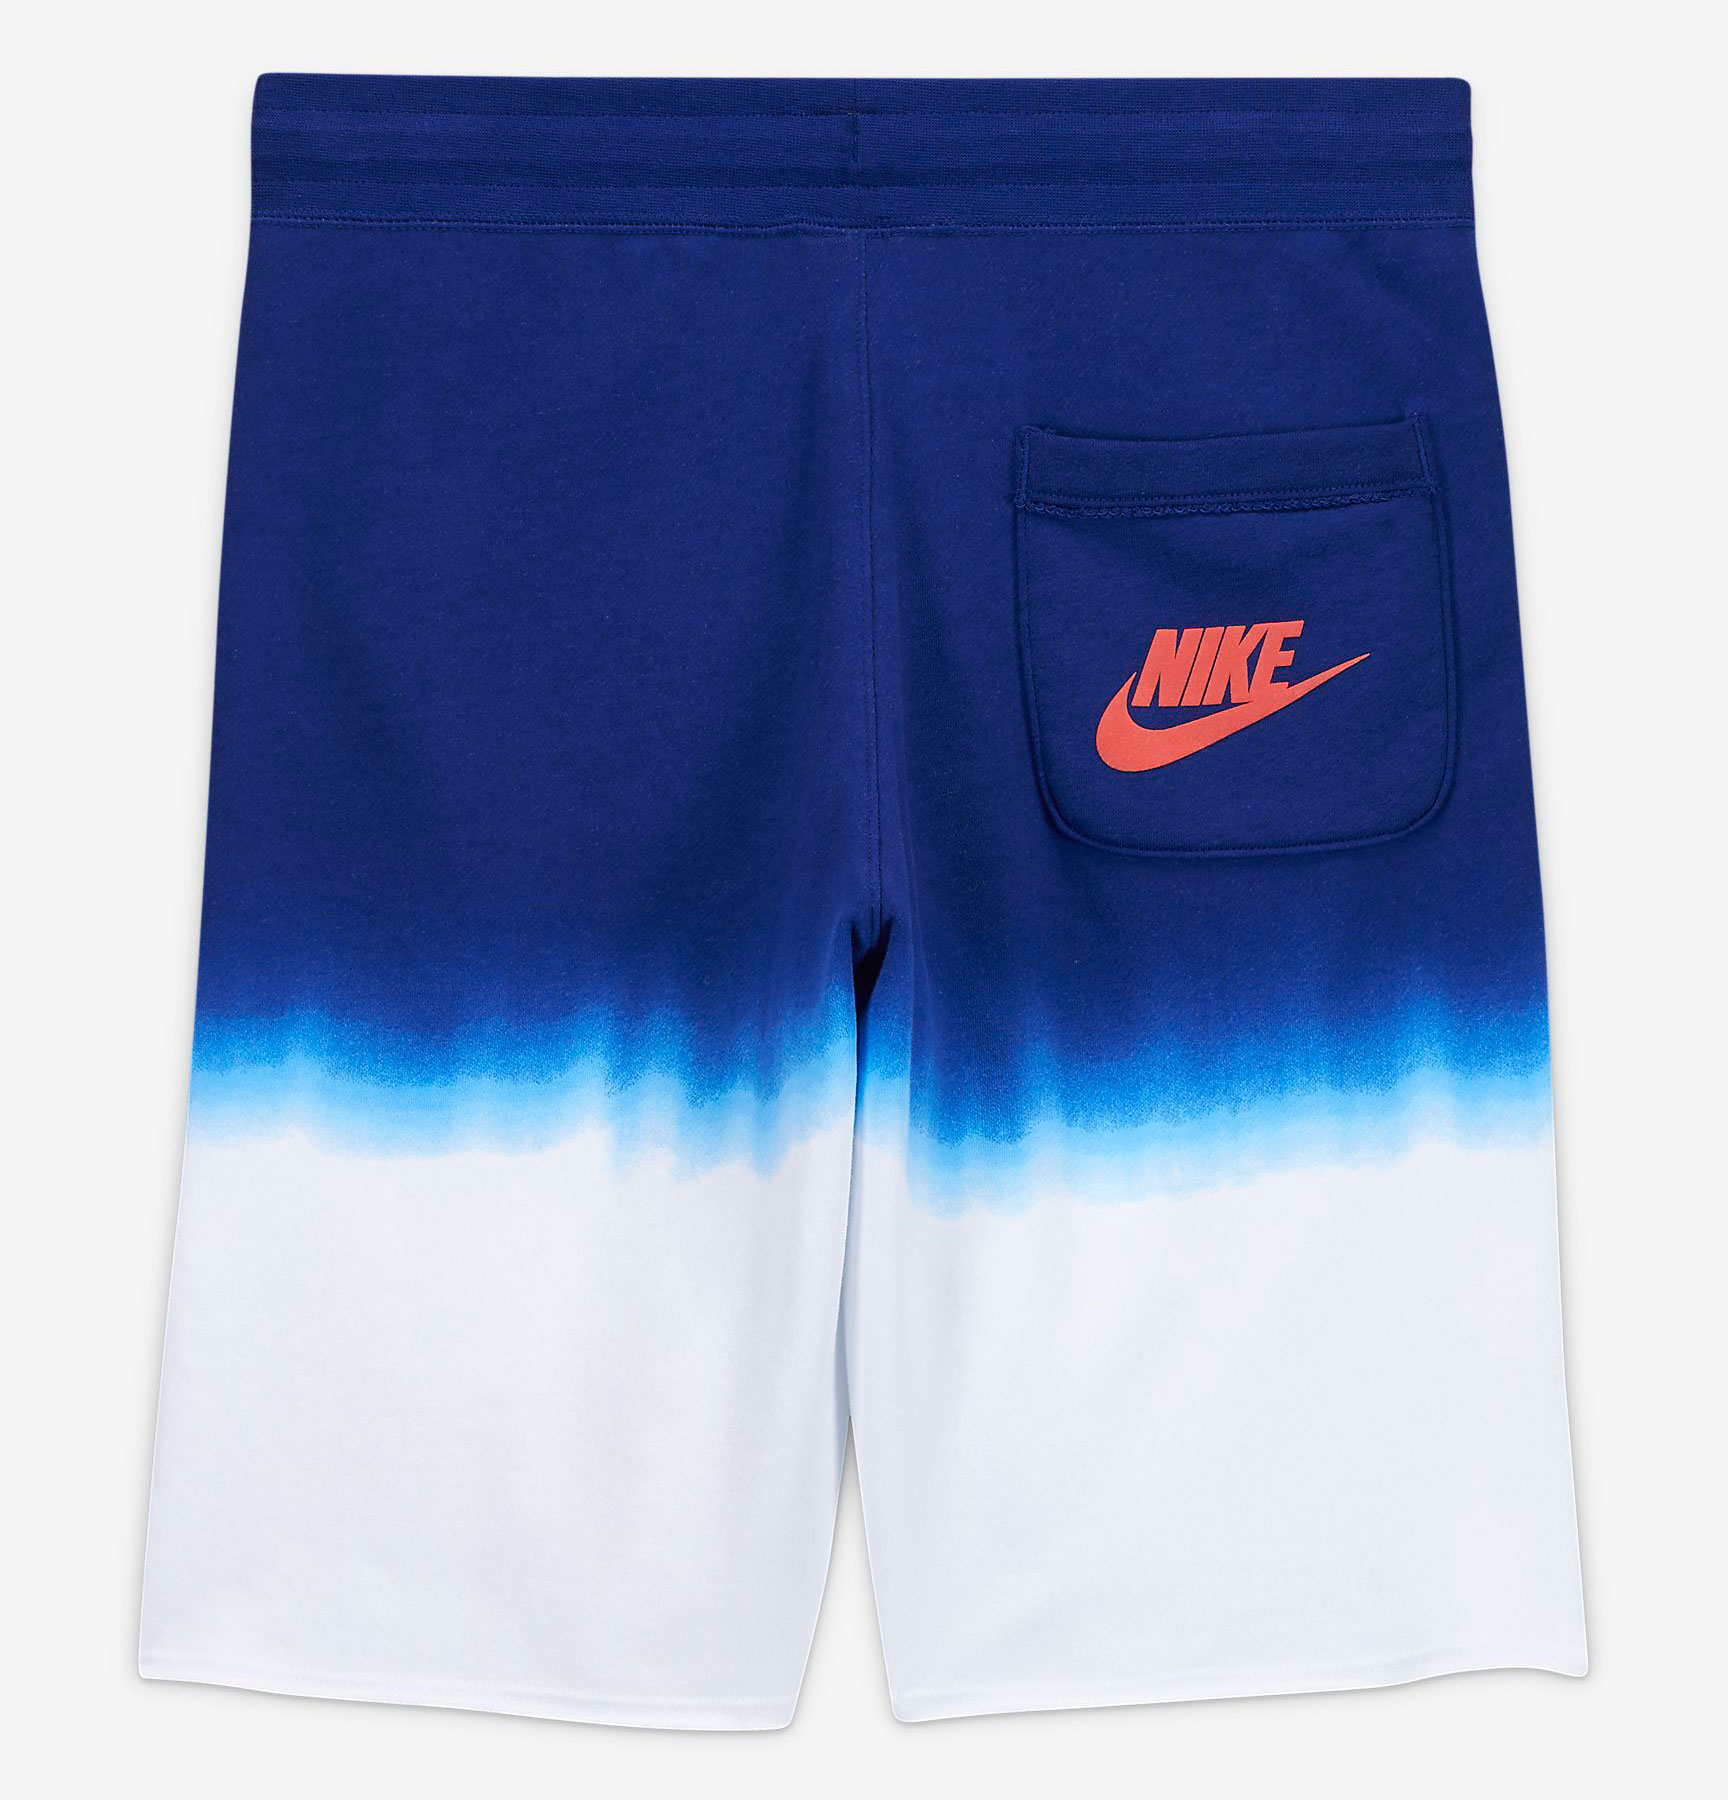 nike-kybrid-s2-what-the-usa-matching-shorts-2